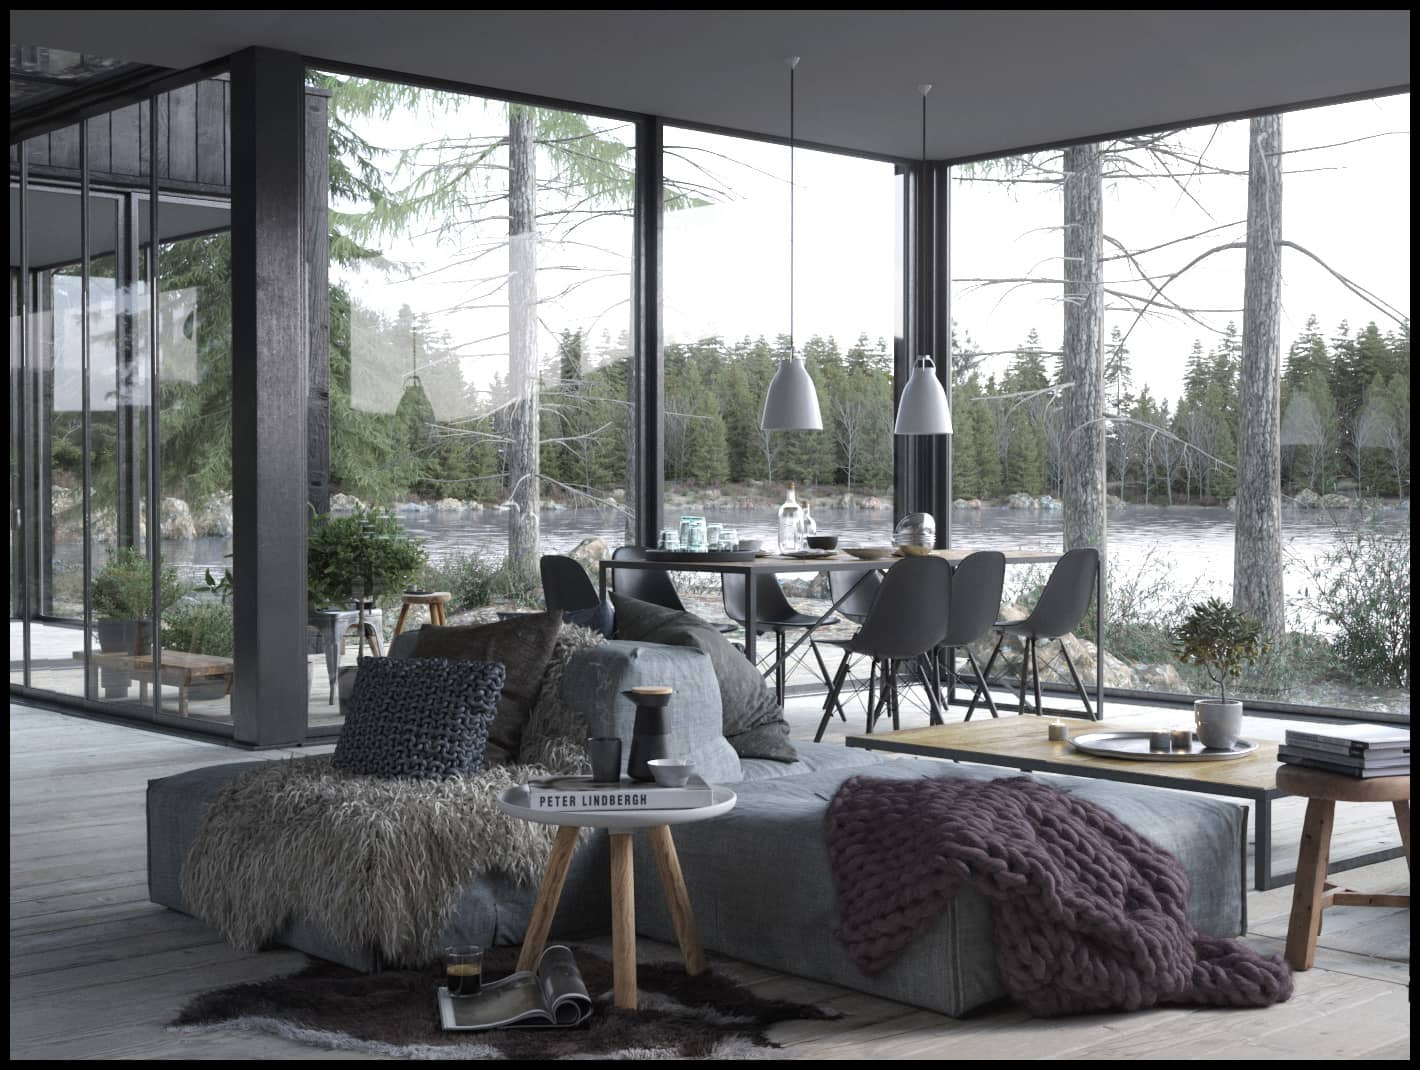 Scandinavian Interior of Cabin in the Woods